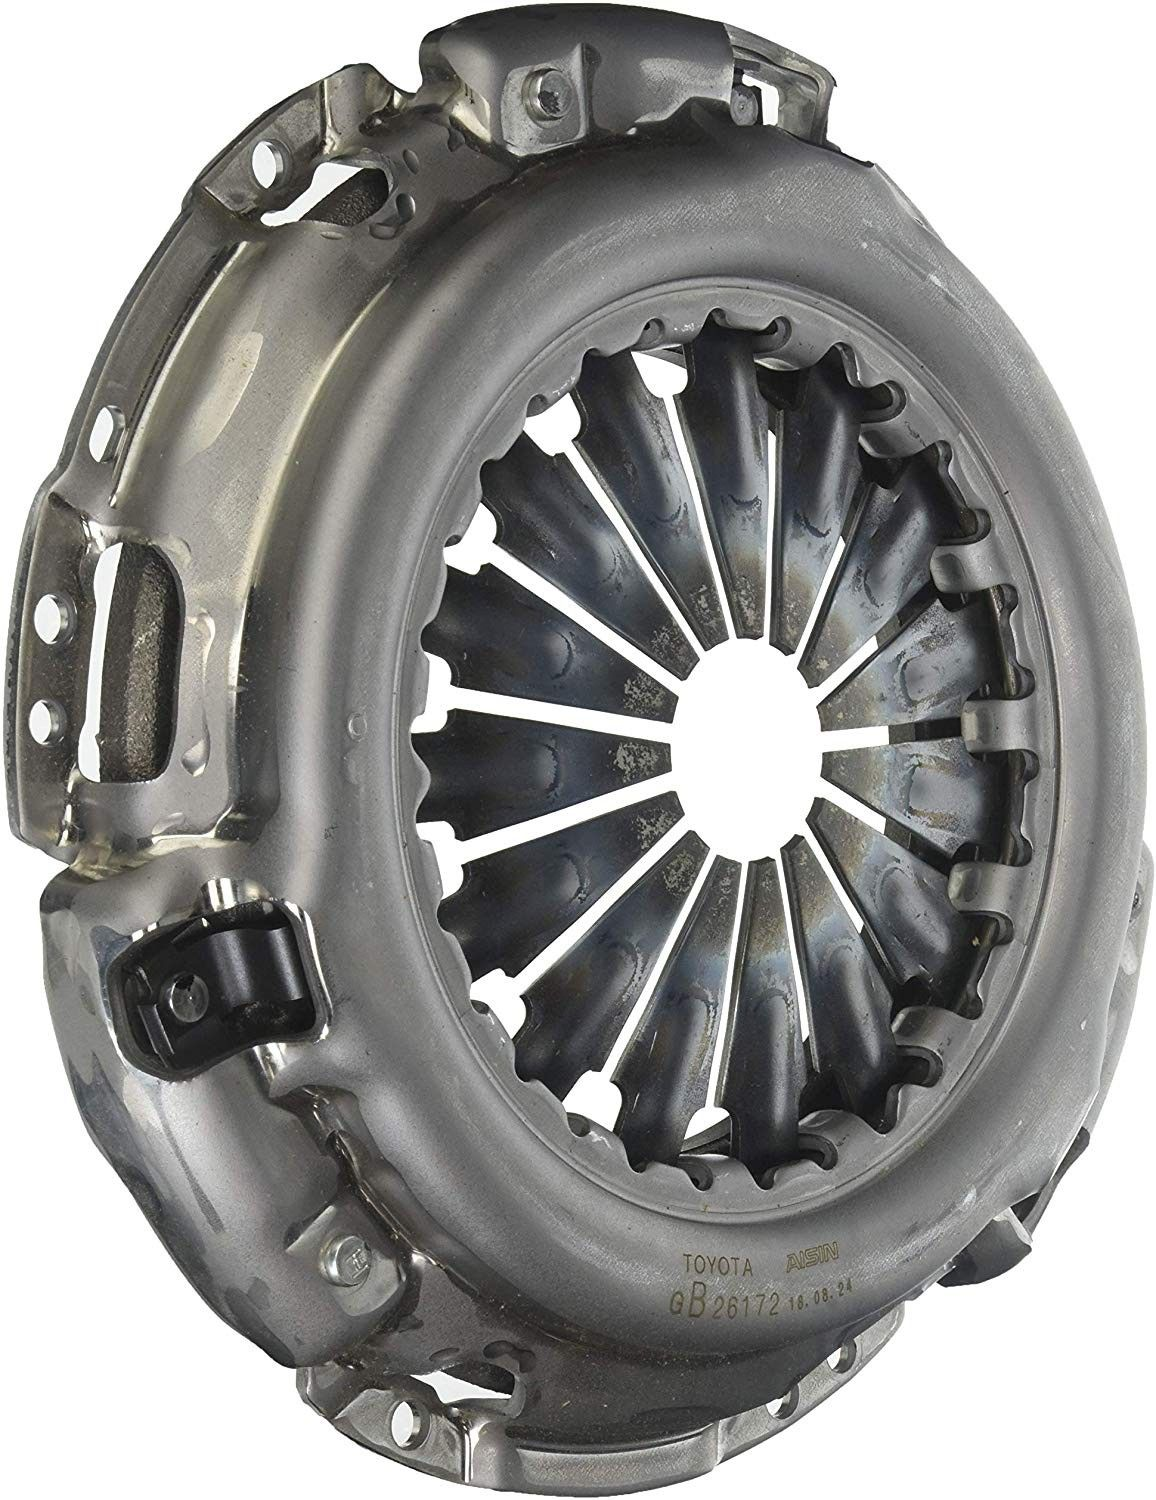 Luk Clutch Pressure Plate For Eicher Canter 10.6 Models 275 - 1280291100